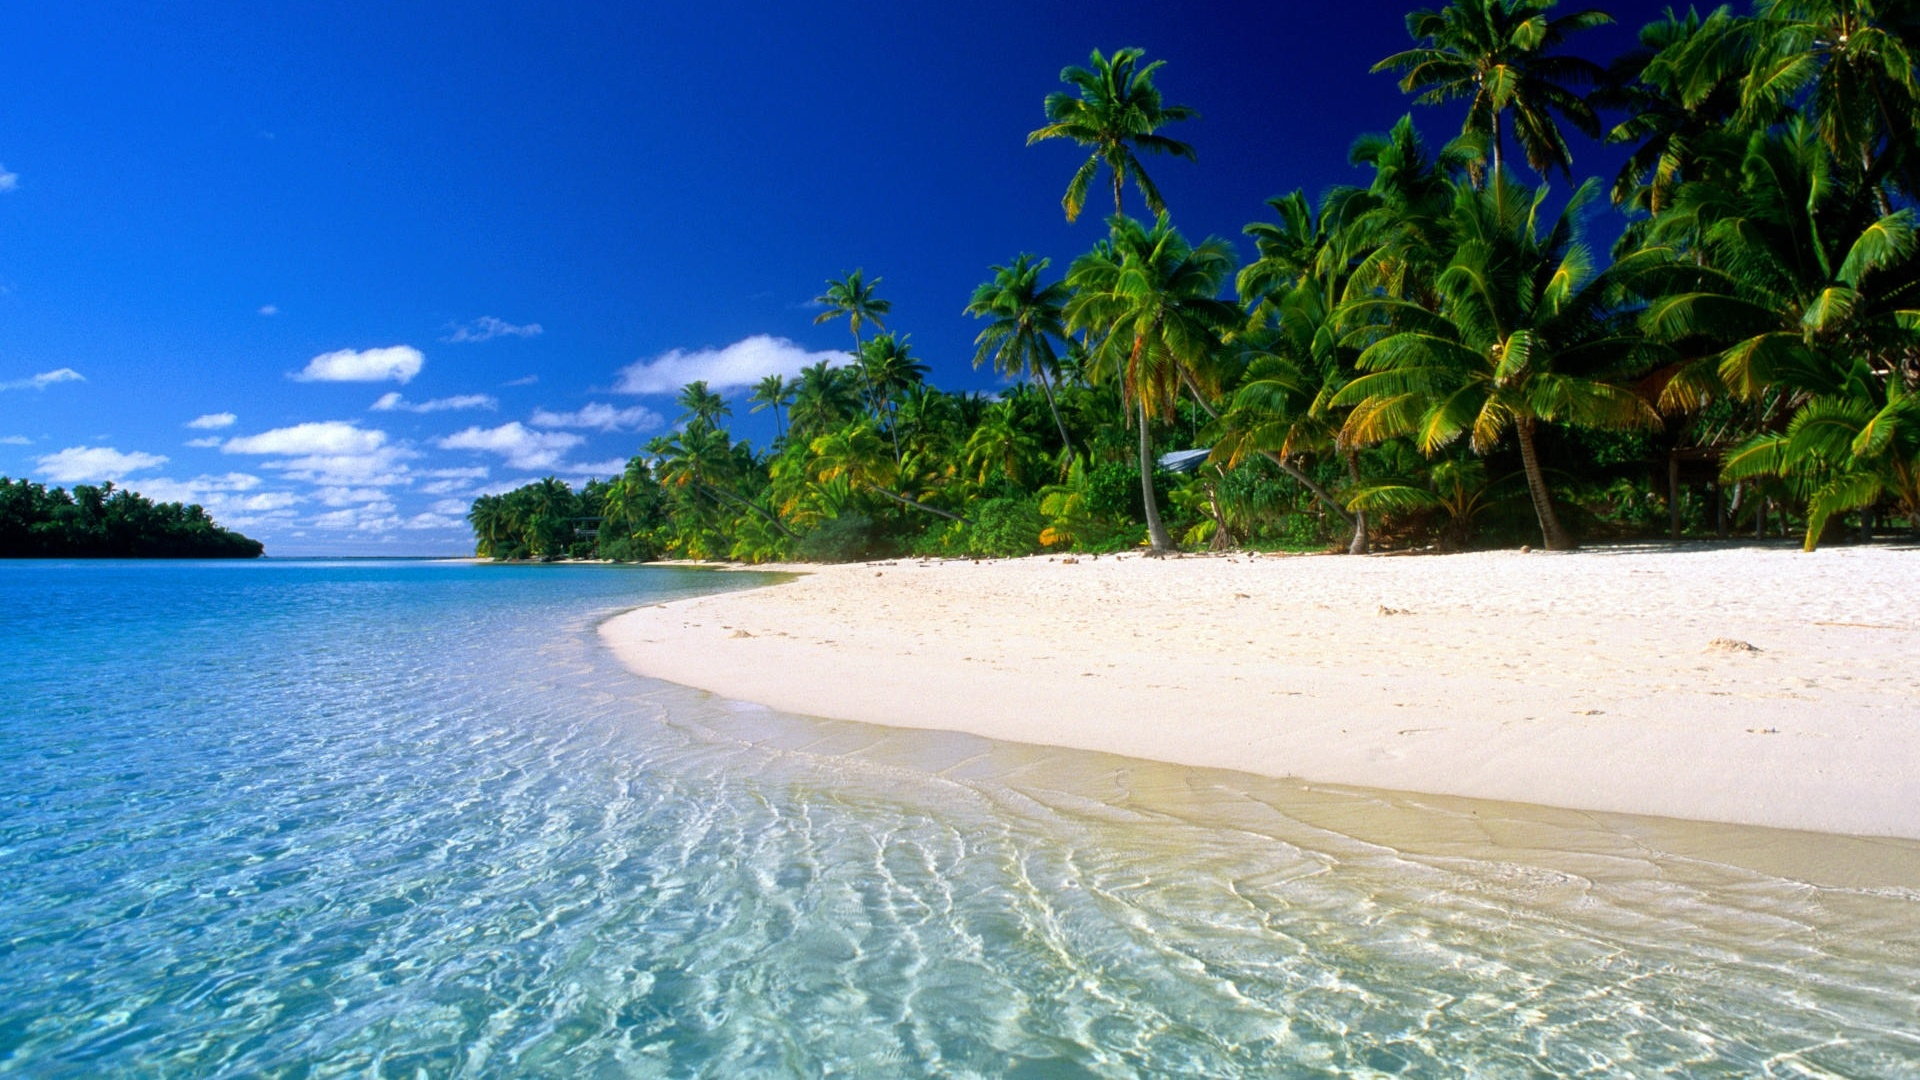 Beautiful Beach Scenes 1920x1080